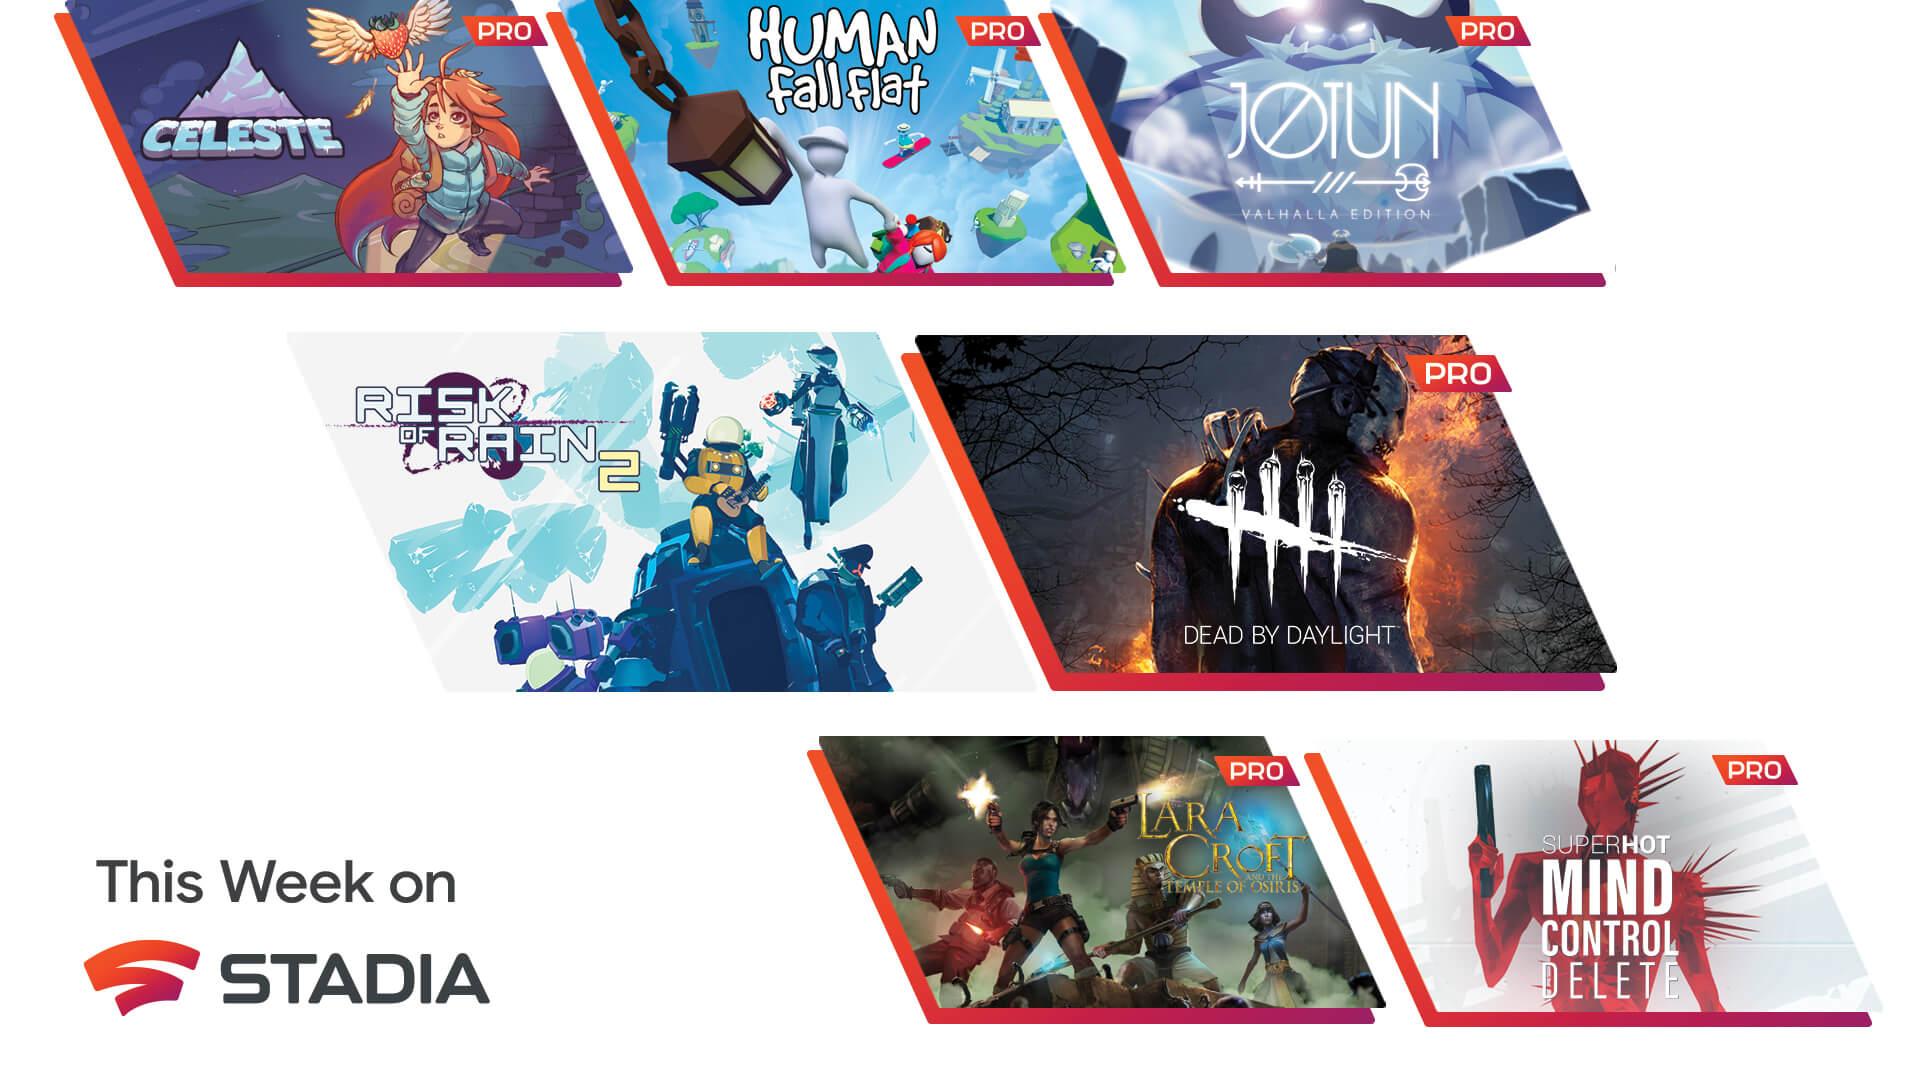 Dead by Daylight and Risk of Rain 2 Head to Stadia Pro's October Lineup